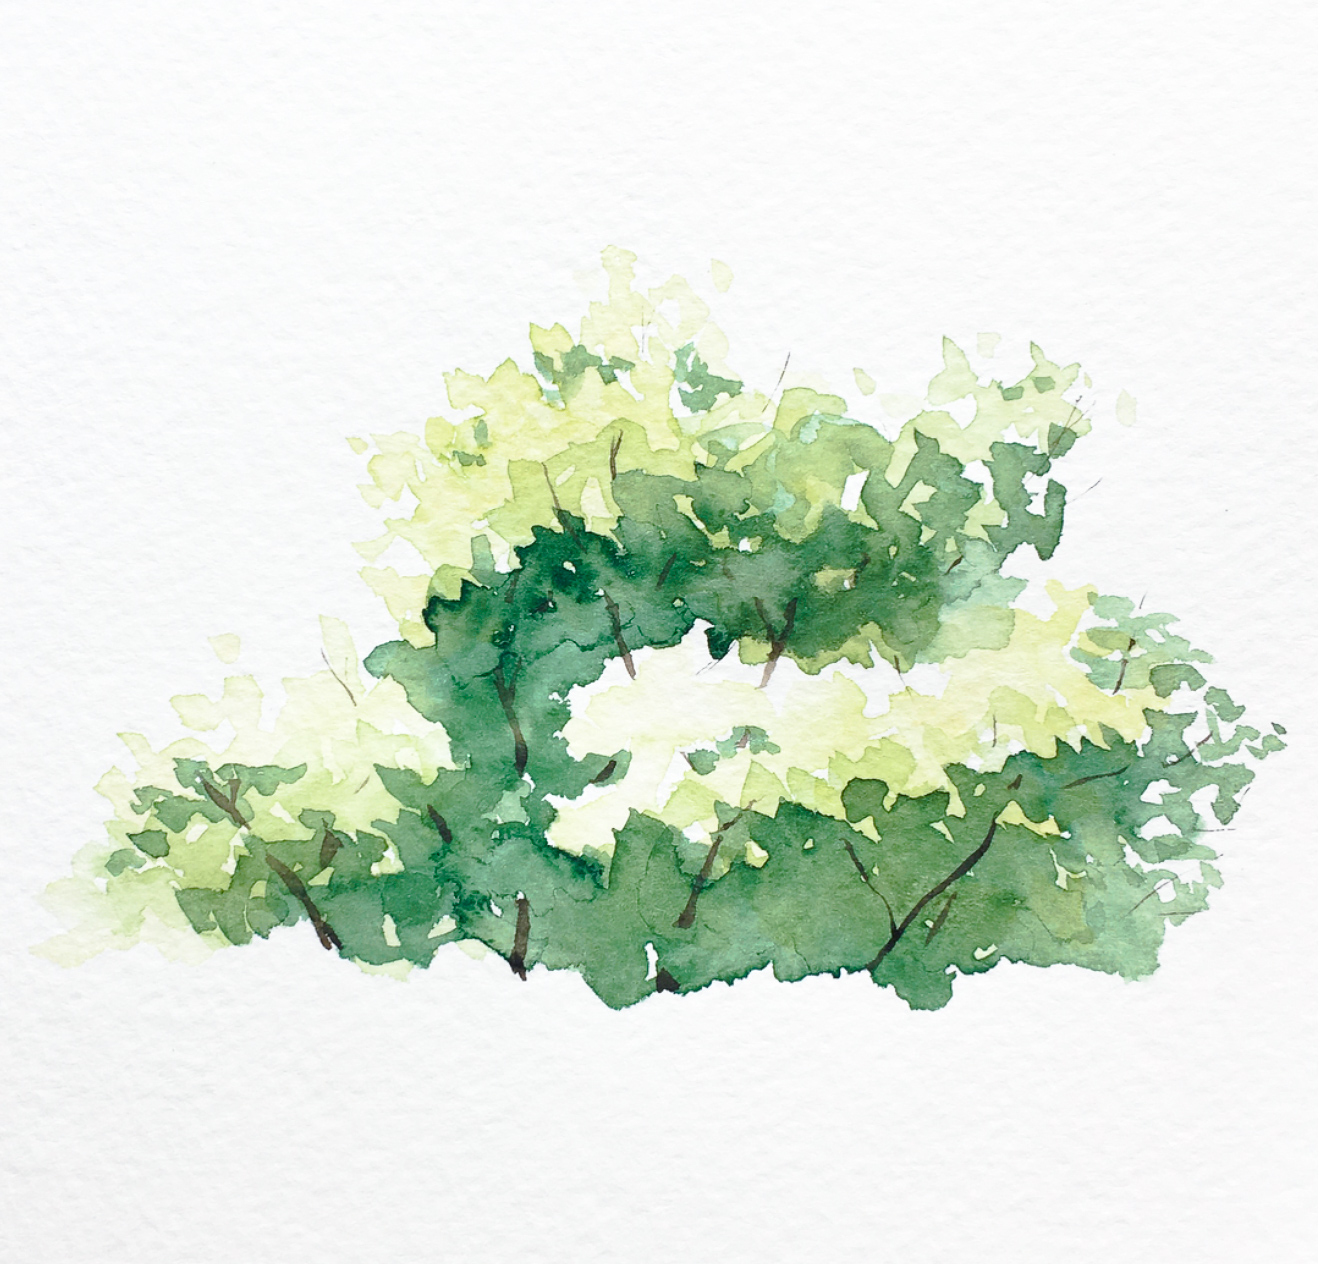 watercolor bushes and trees